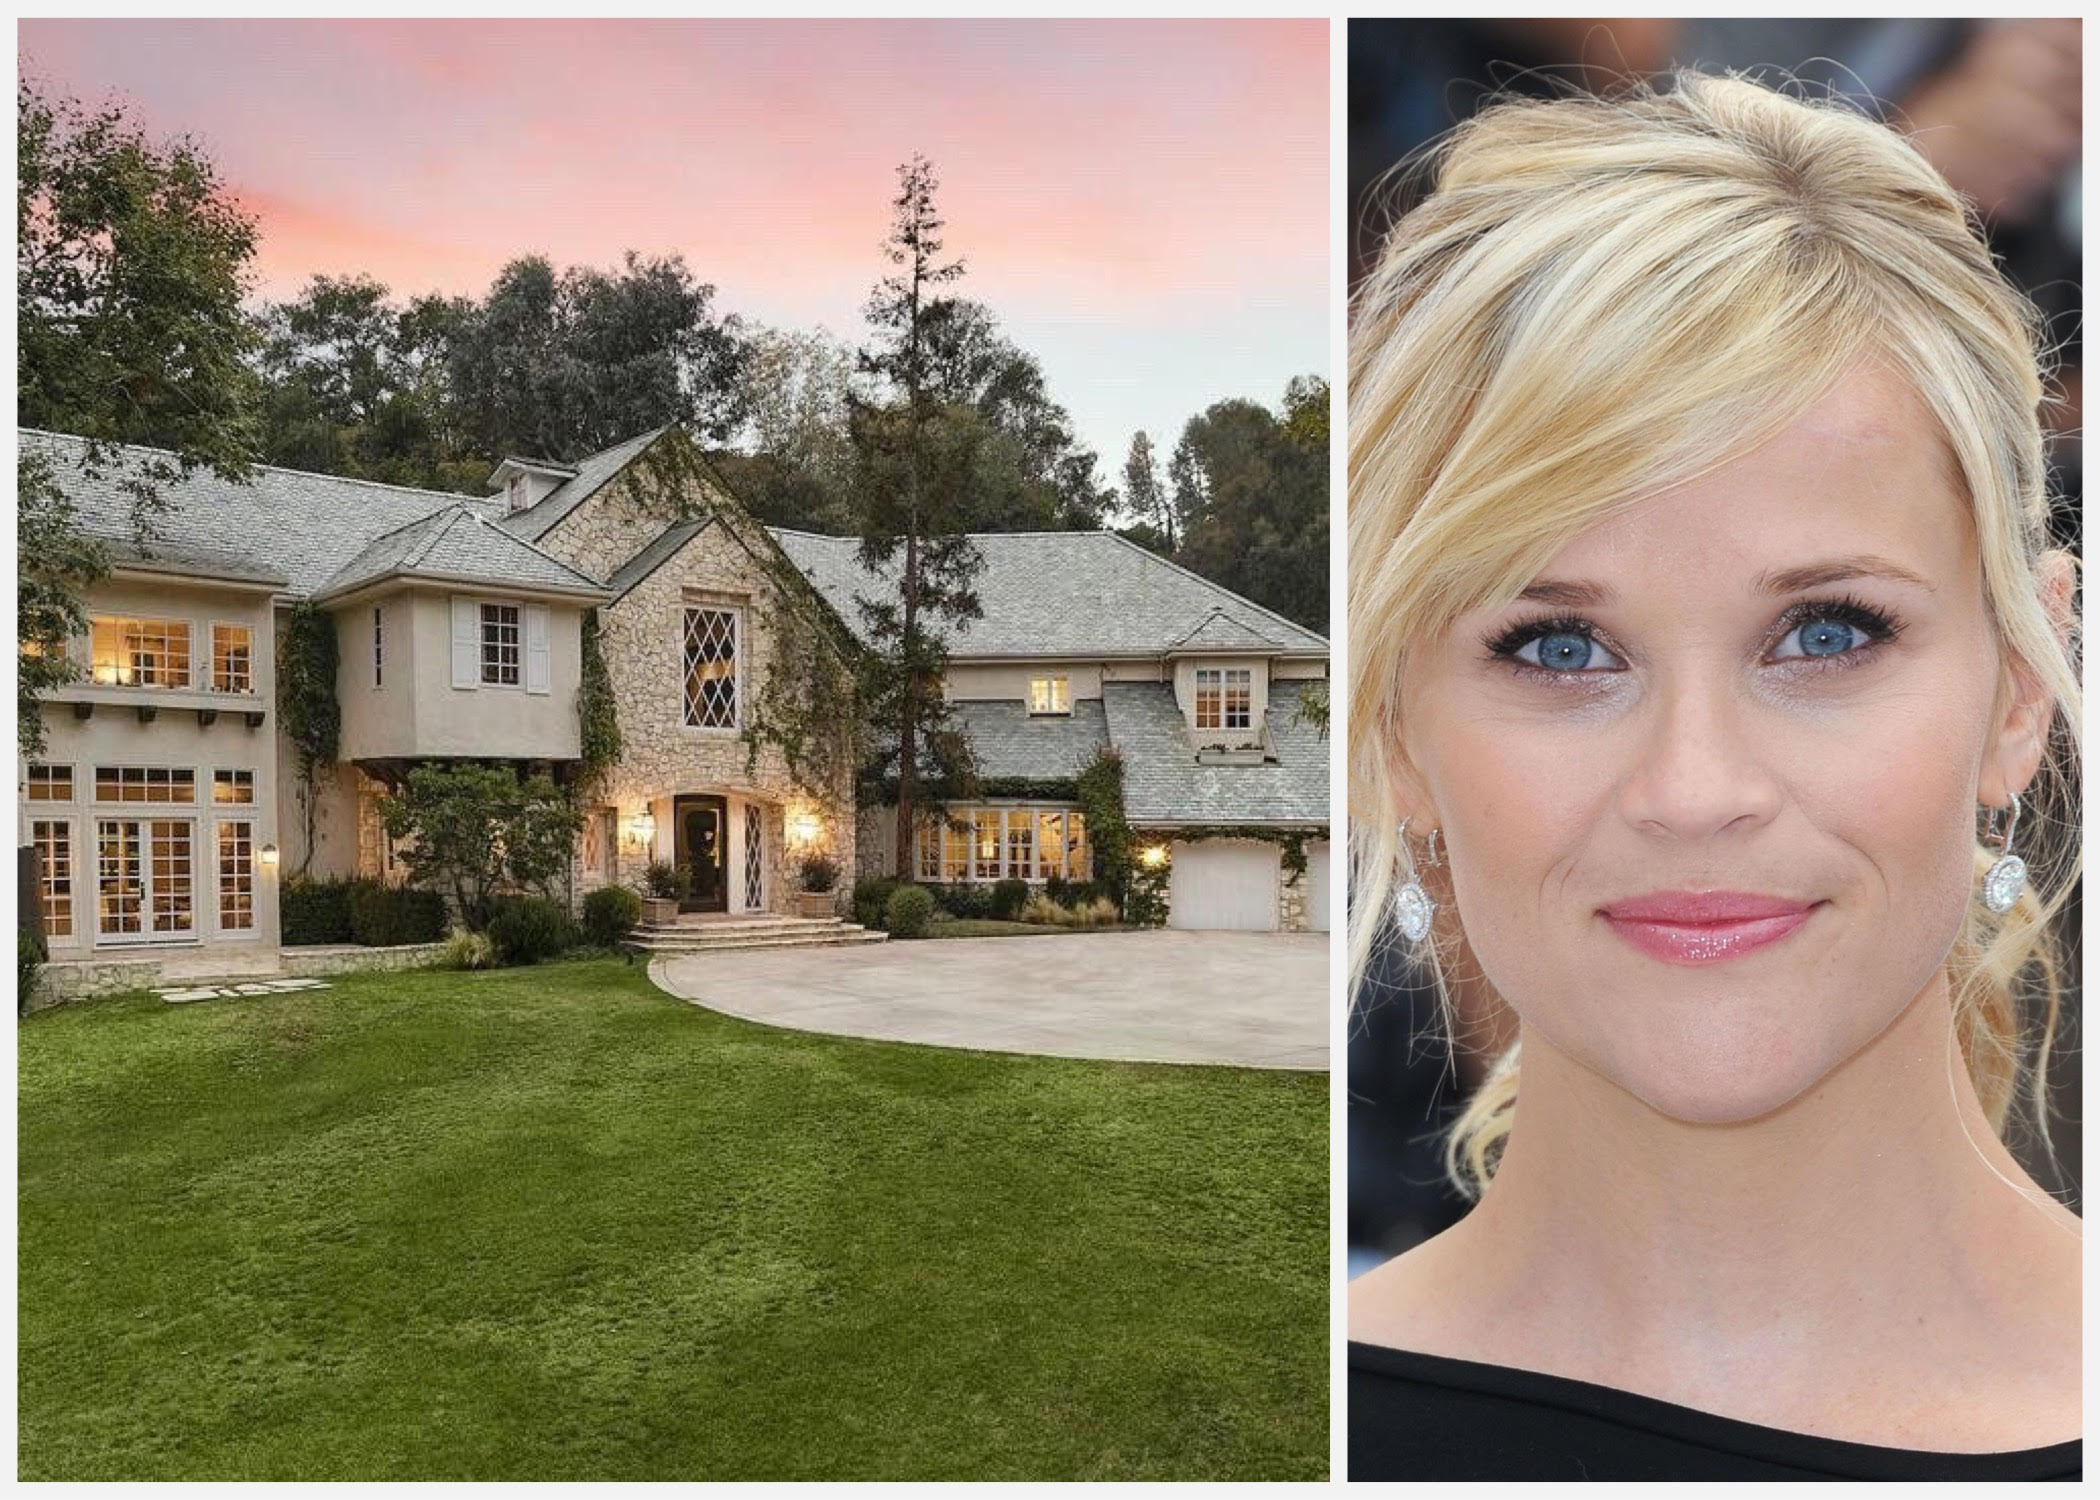 Beautiful mansion of actress Reese Witherspoon in Los Angeles